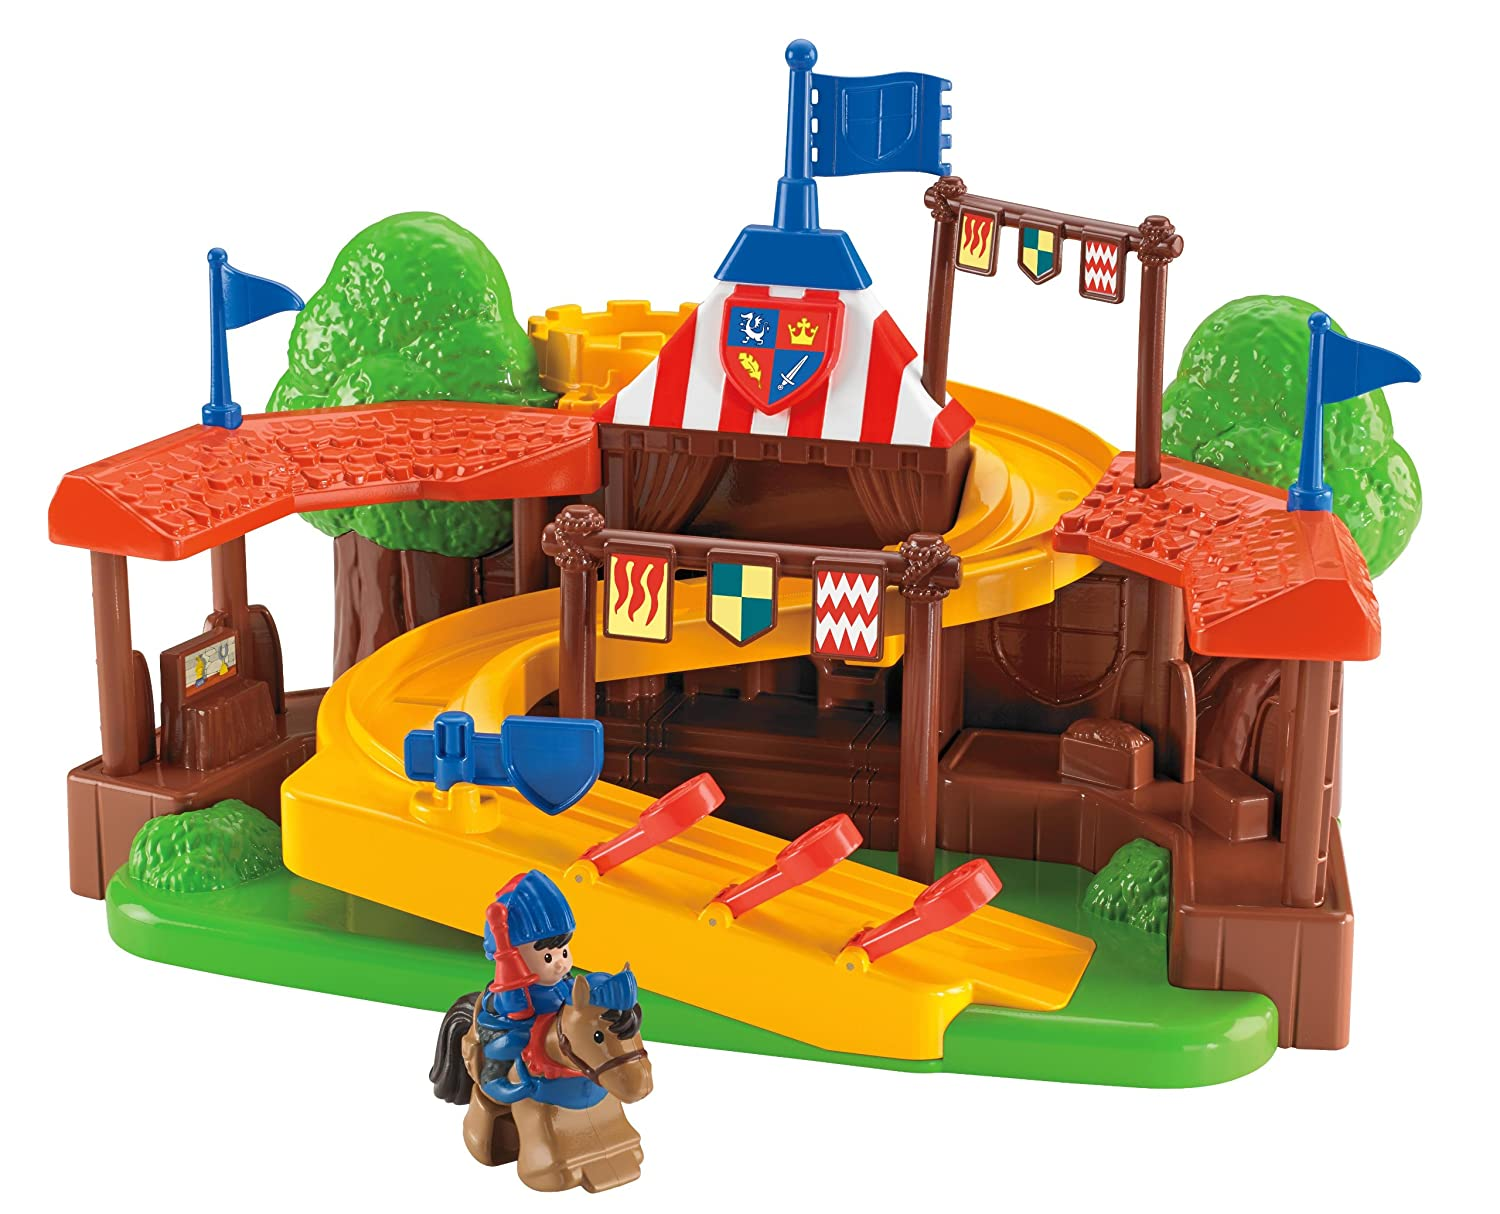 Mike the Knight Klip Klop Arena Playset